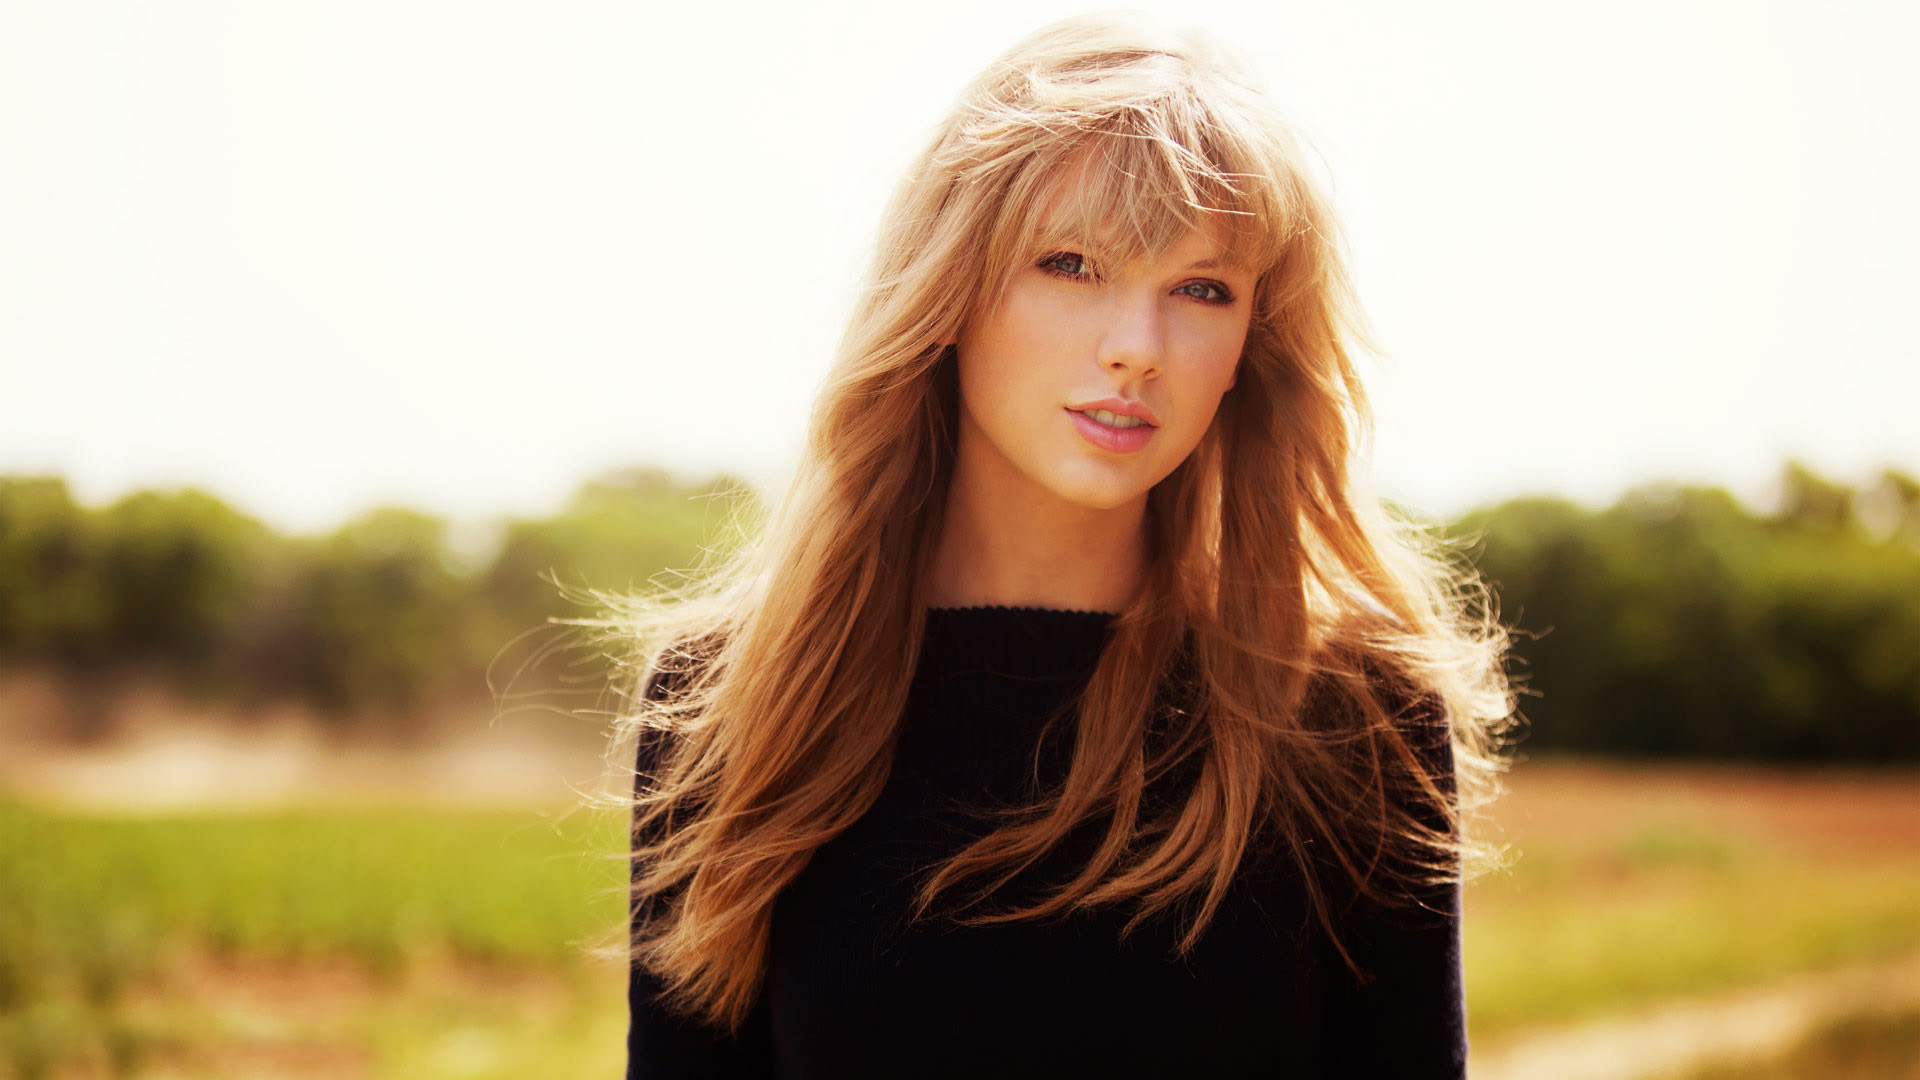 Taylor Swift Photo   Wallpaper High Definition High Quality 1920x1080